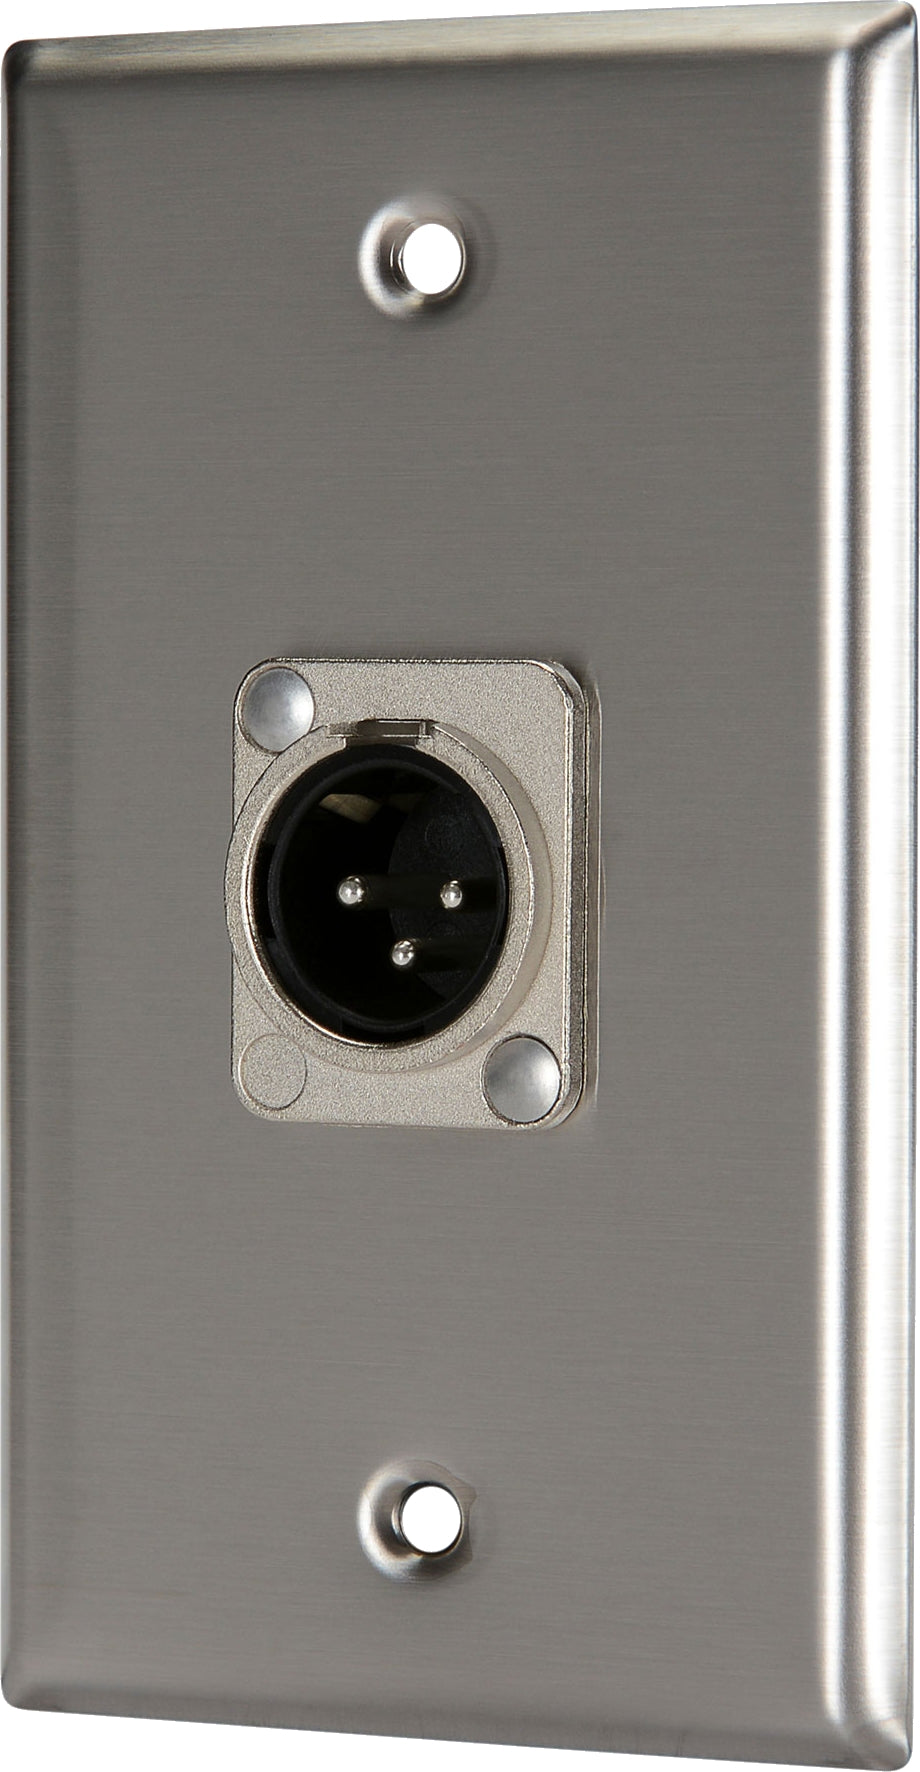 07-6072-01 Stainless Steel Wall Plate with 1*XLR Male